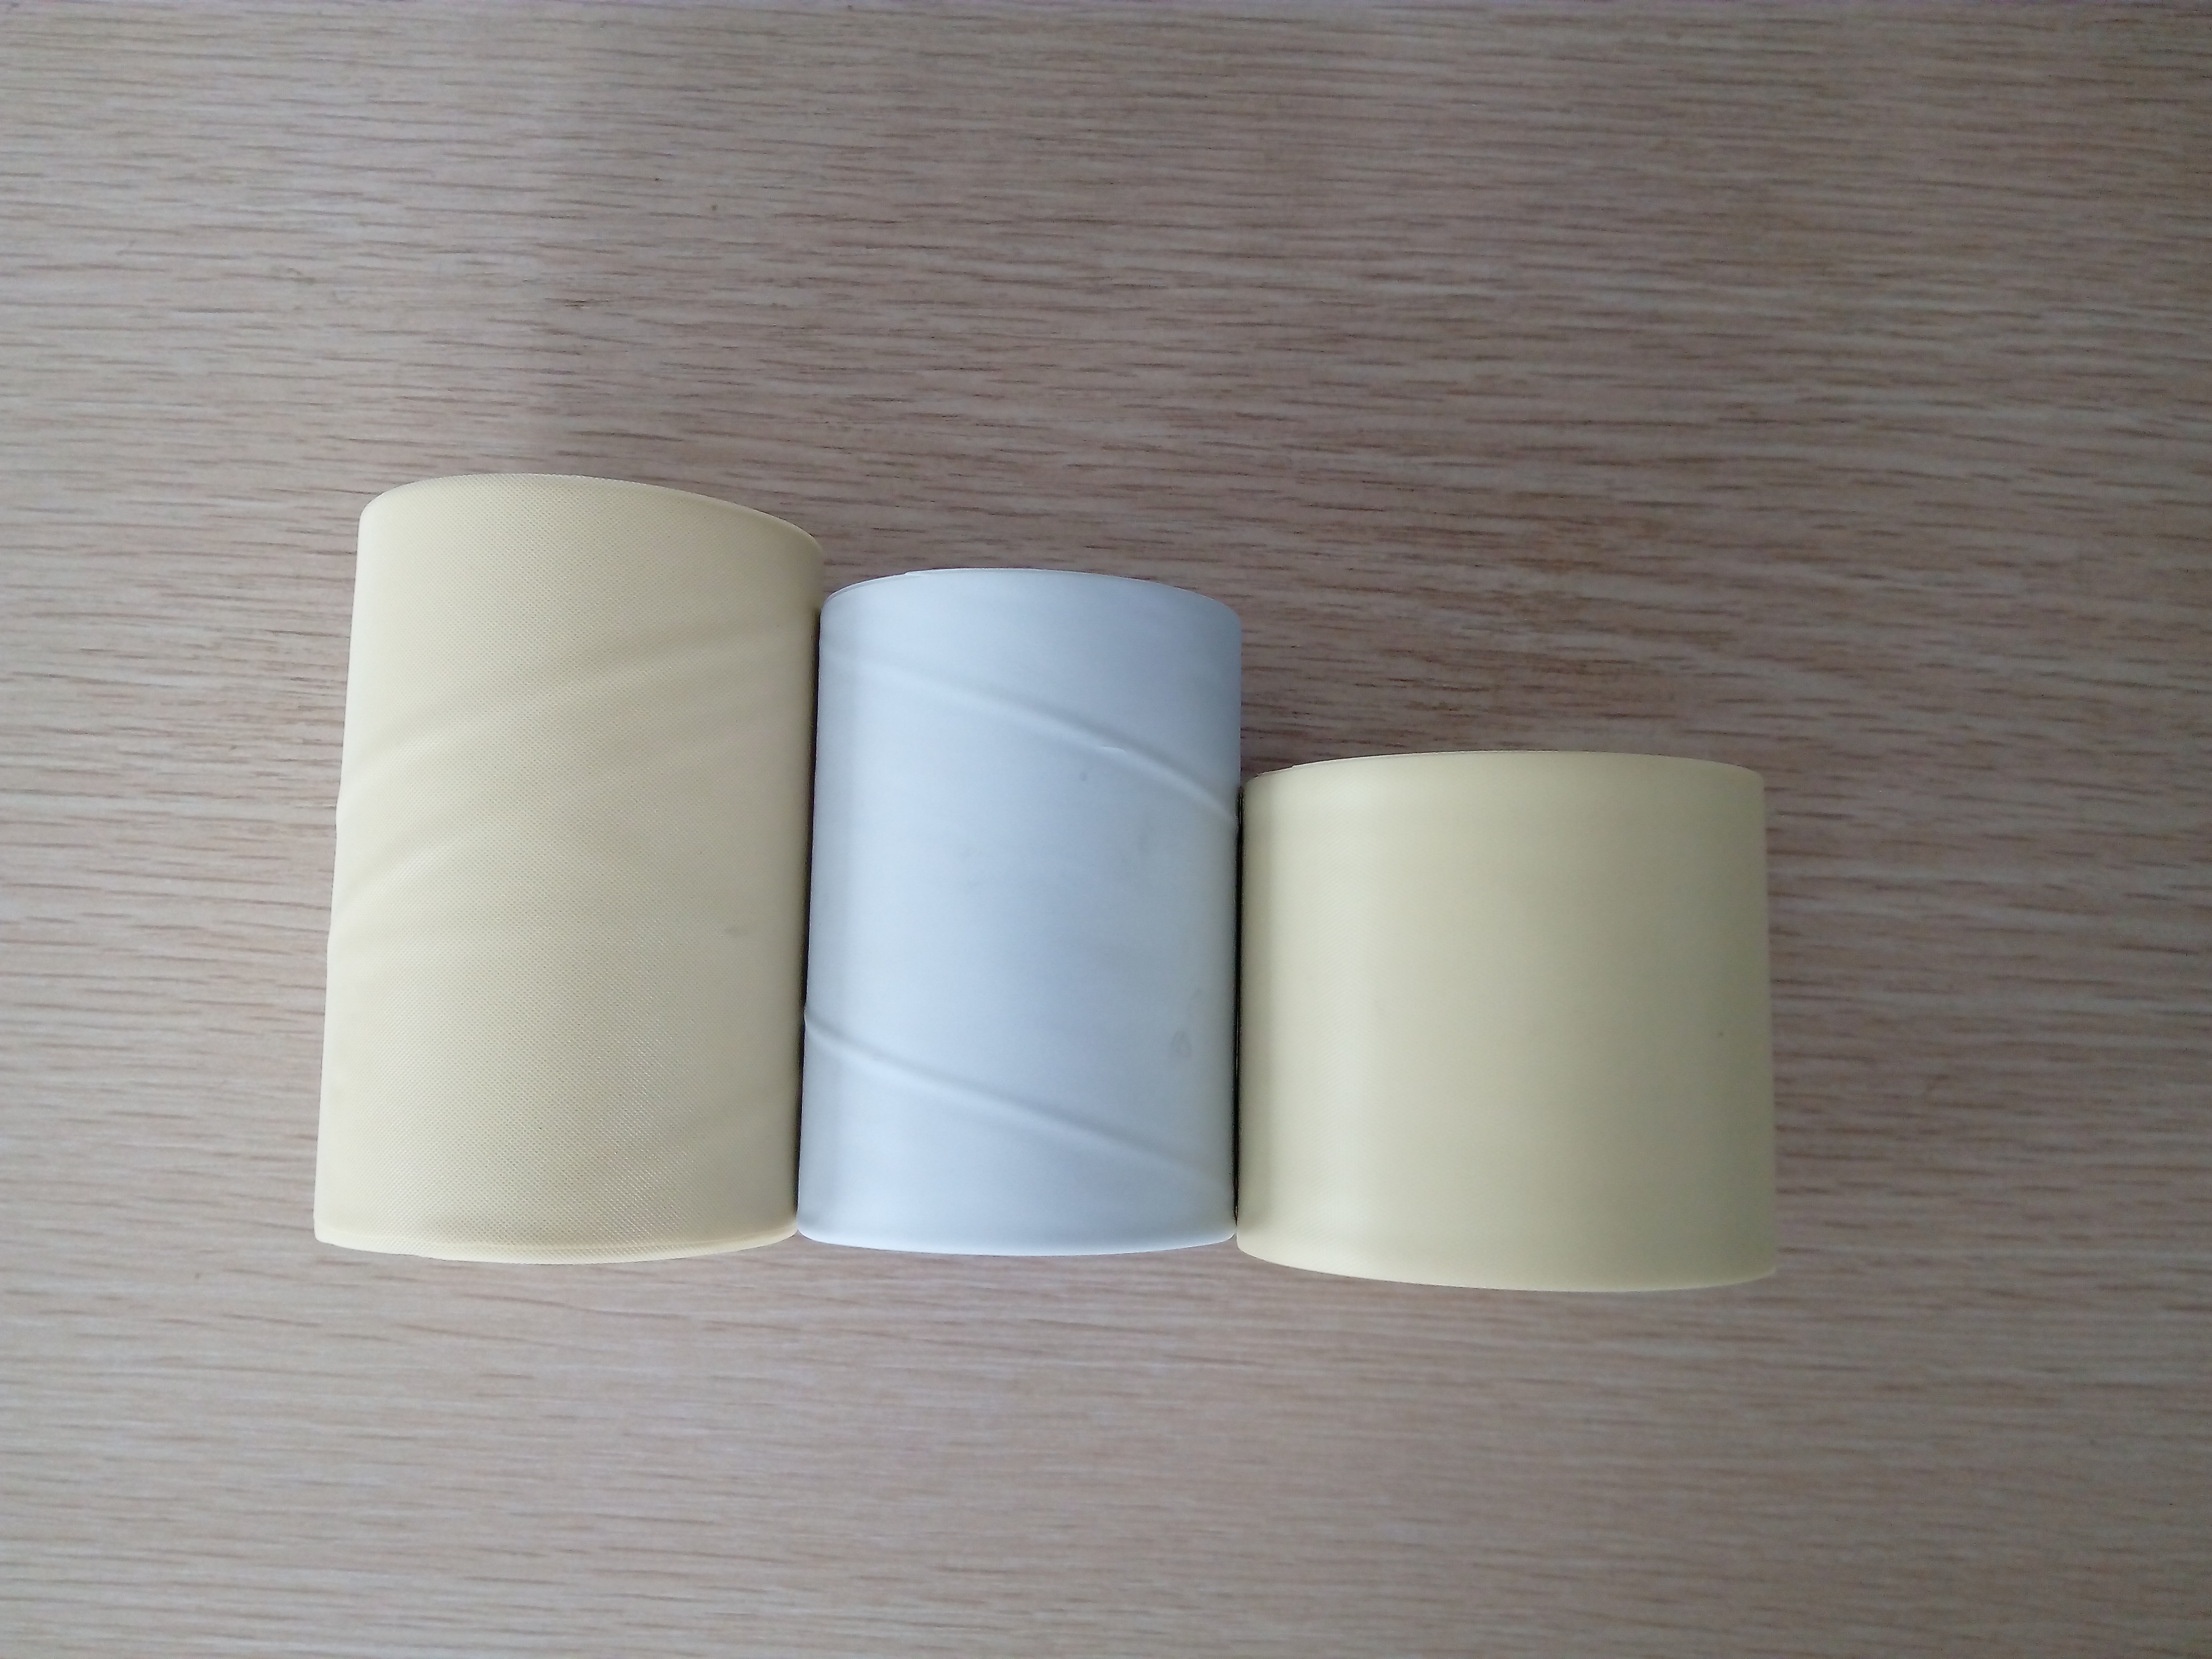 air condition pipe insulation tape pvc pipe protective wrapping tape